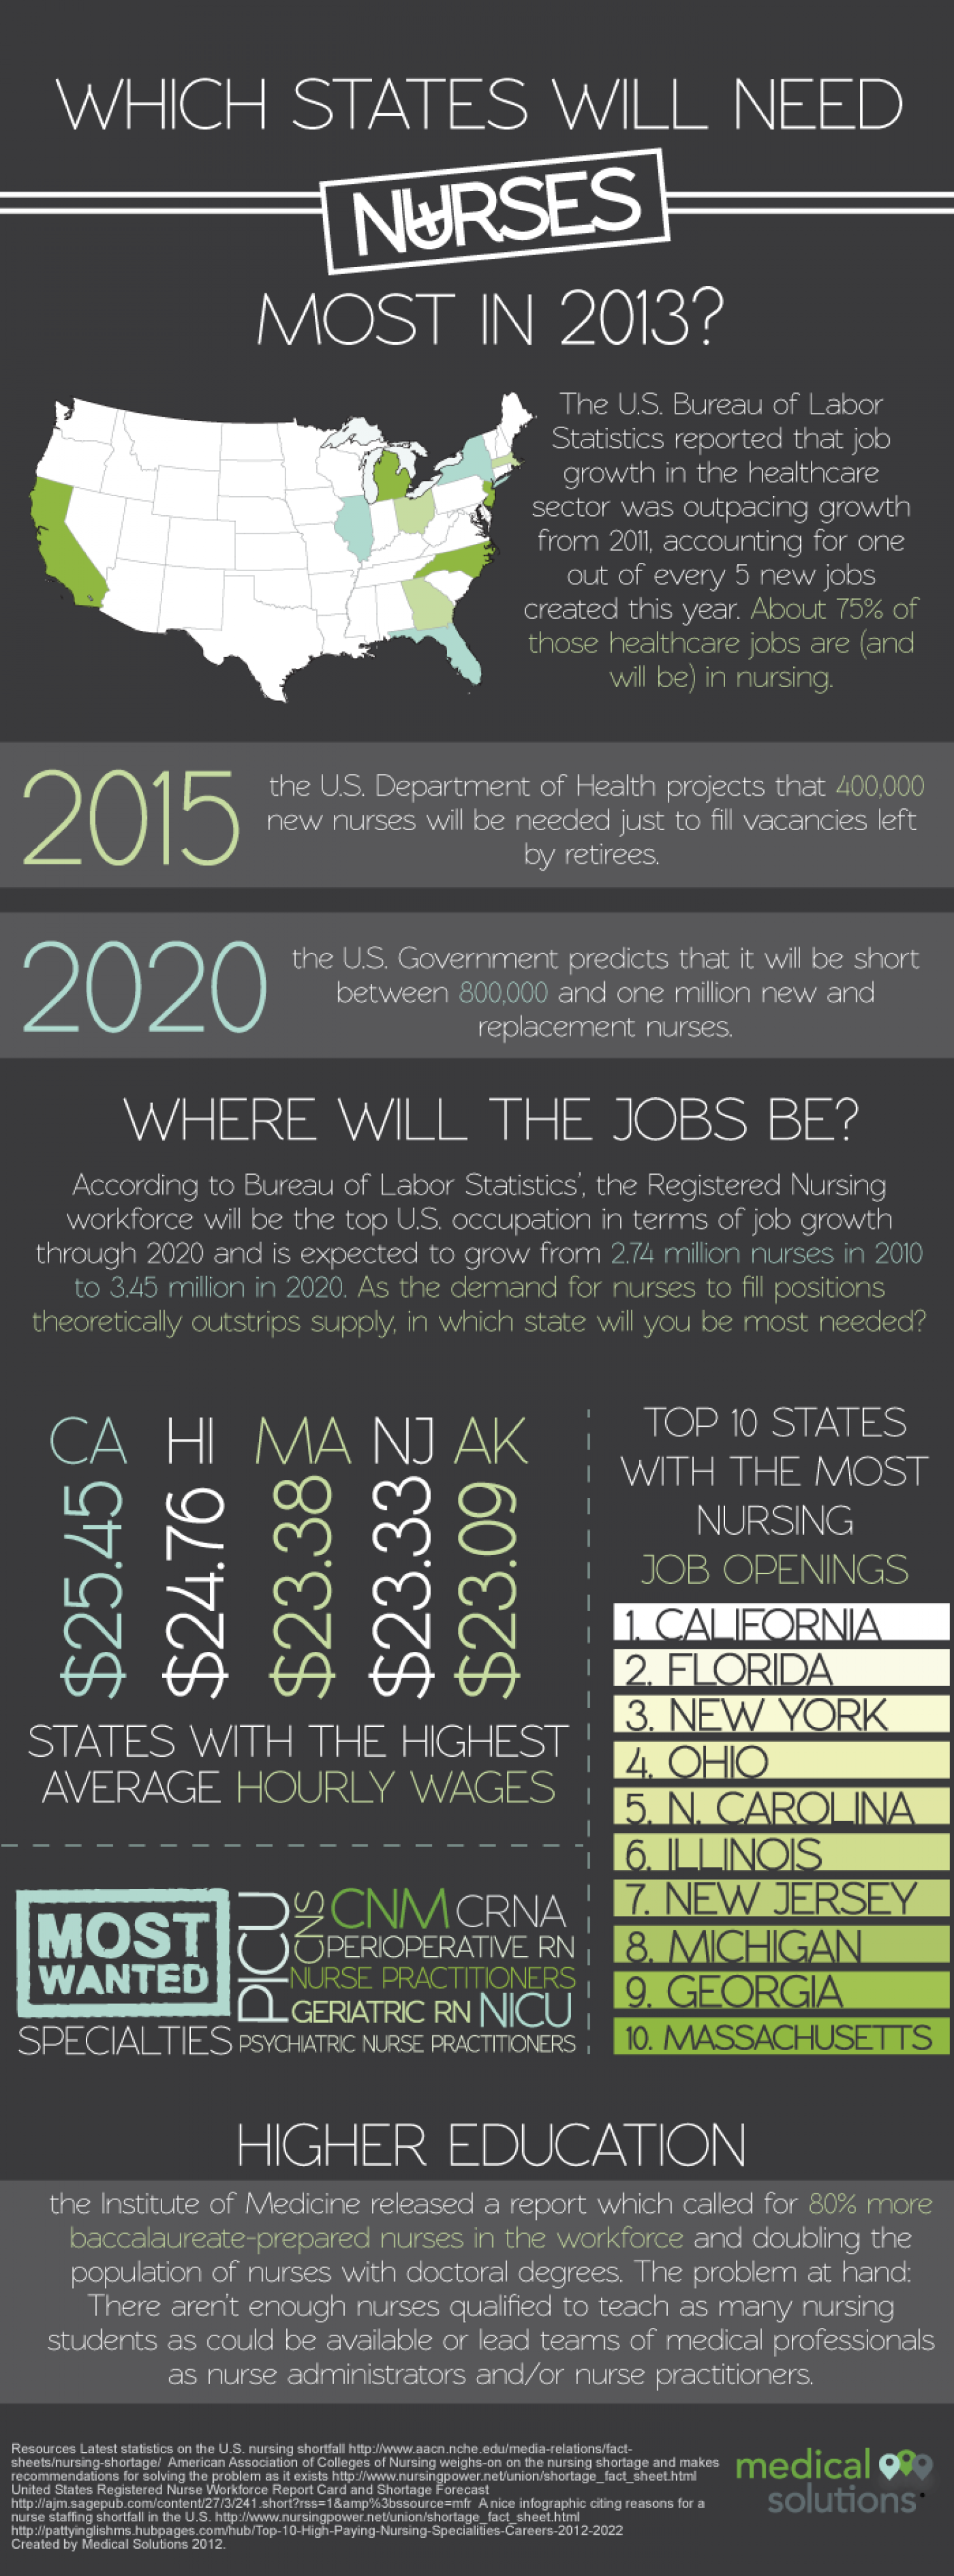 Which States will Need Nurses Most in 2013? Infographic